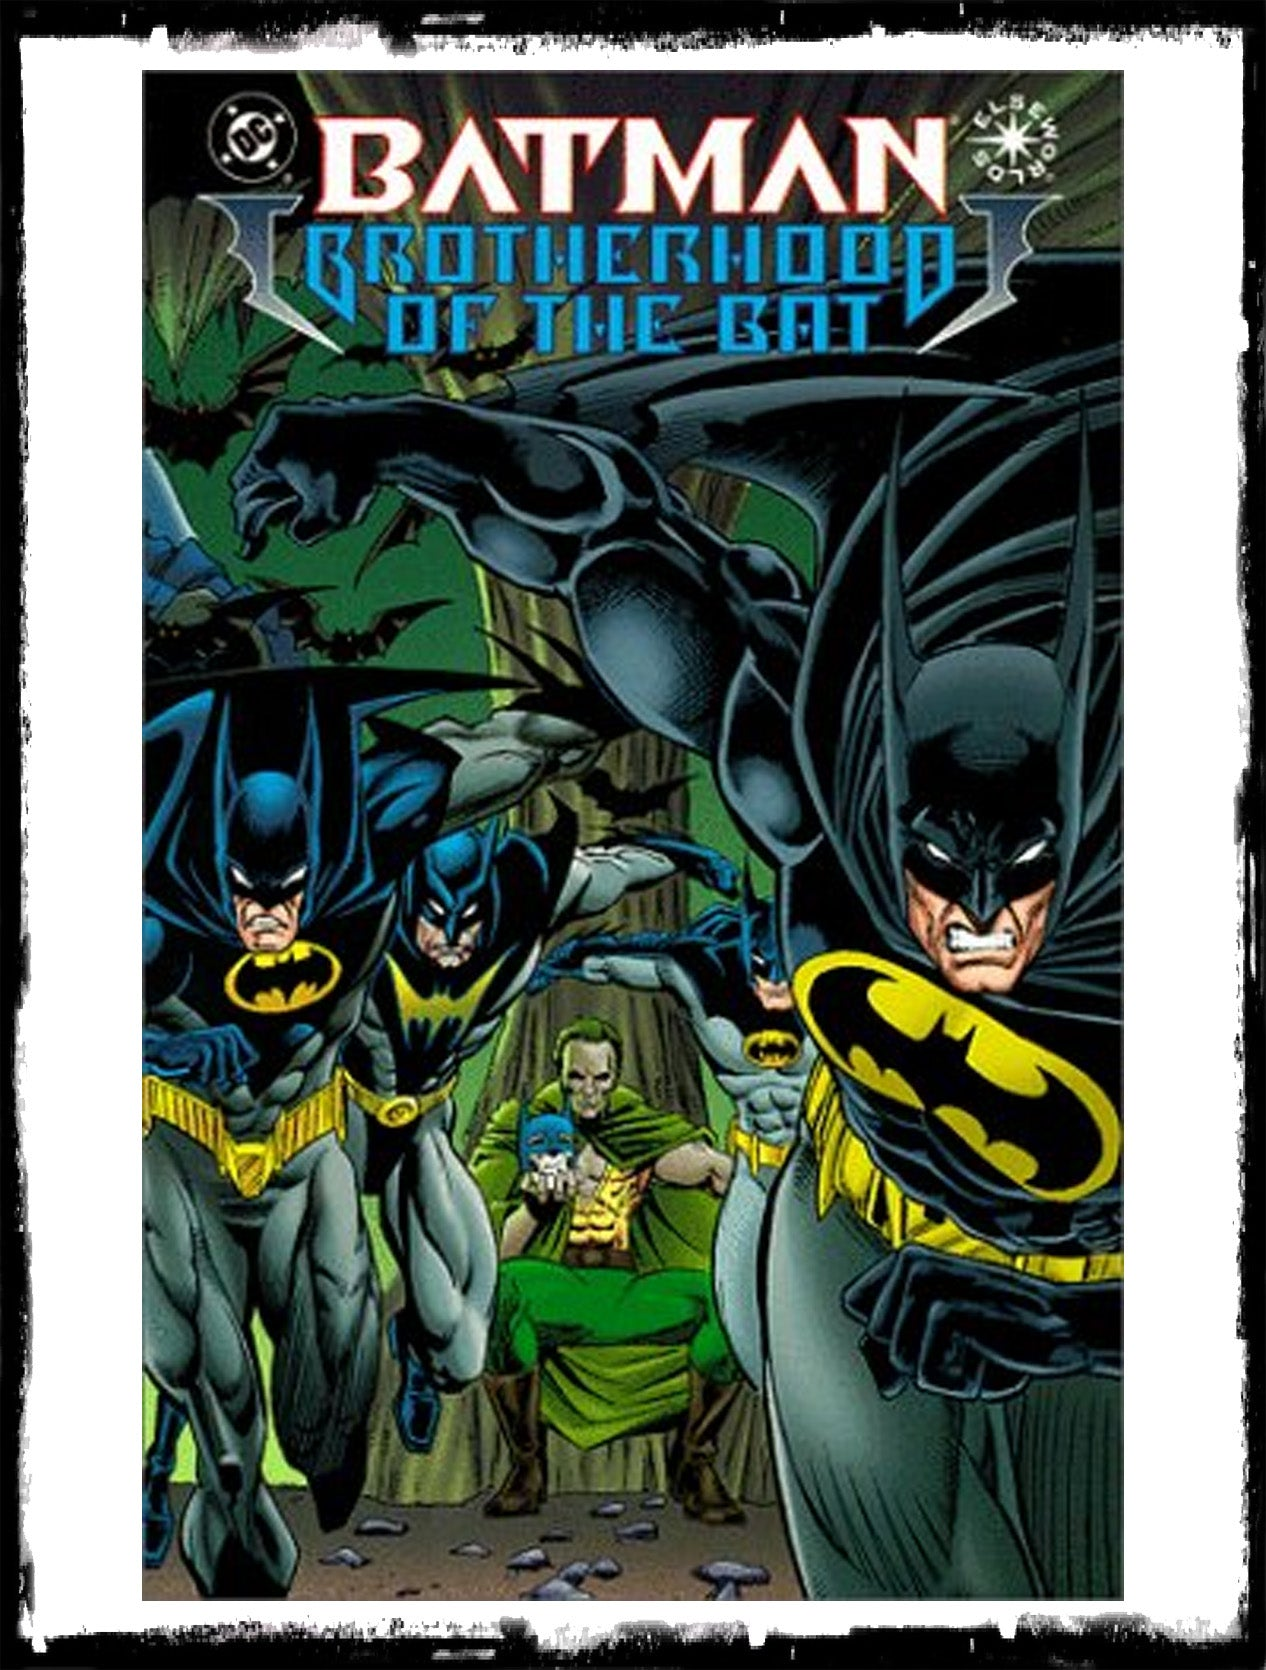 BATMAN: BROTHERHOOD OF THE BAT - #1 PRESTIGE FORMAT ELSEWORDS (1995 - NM)